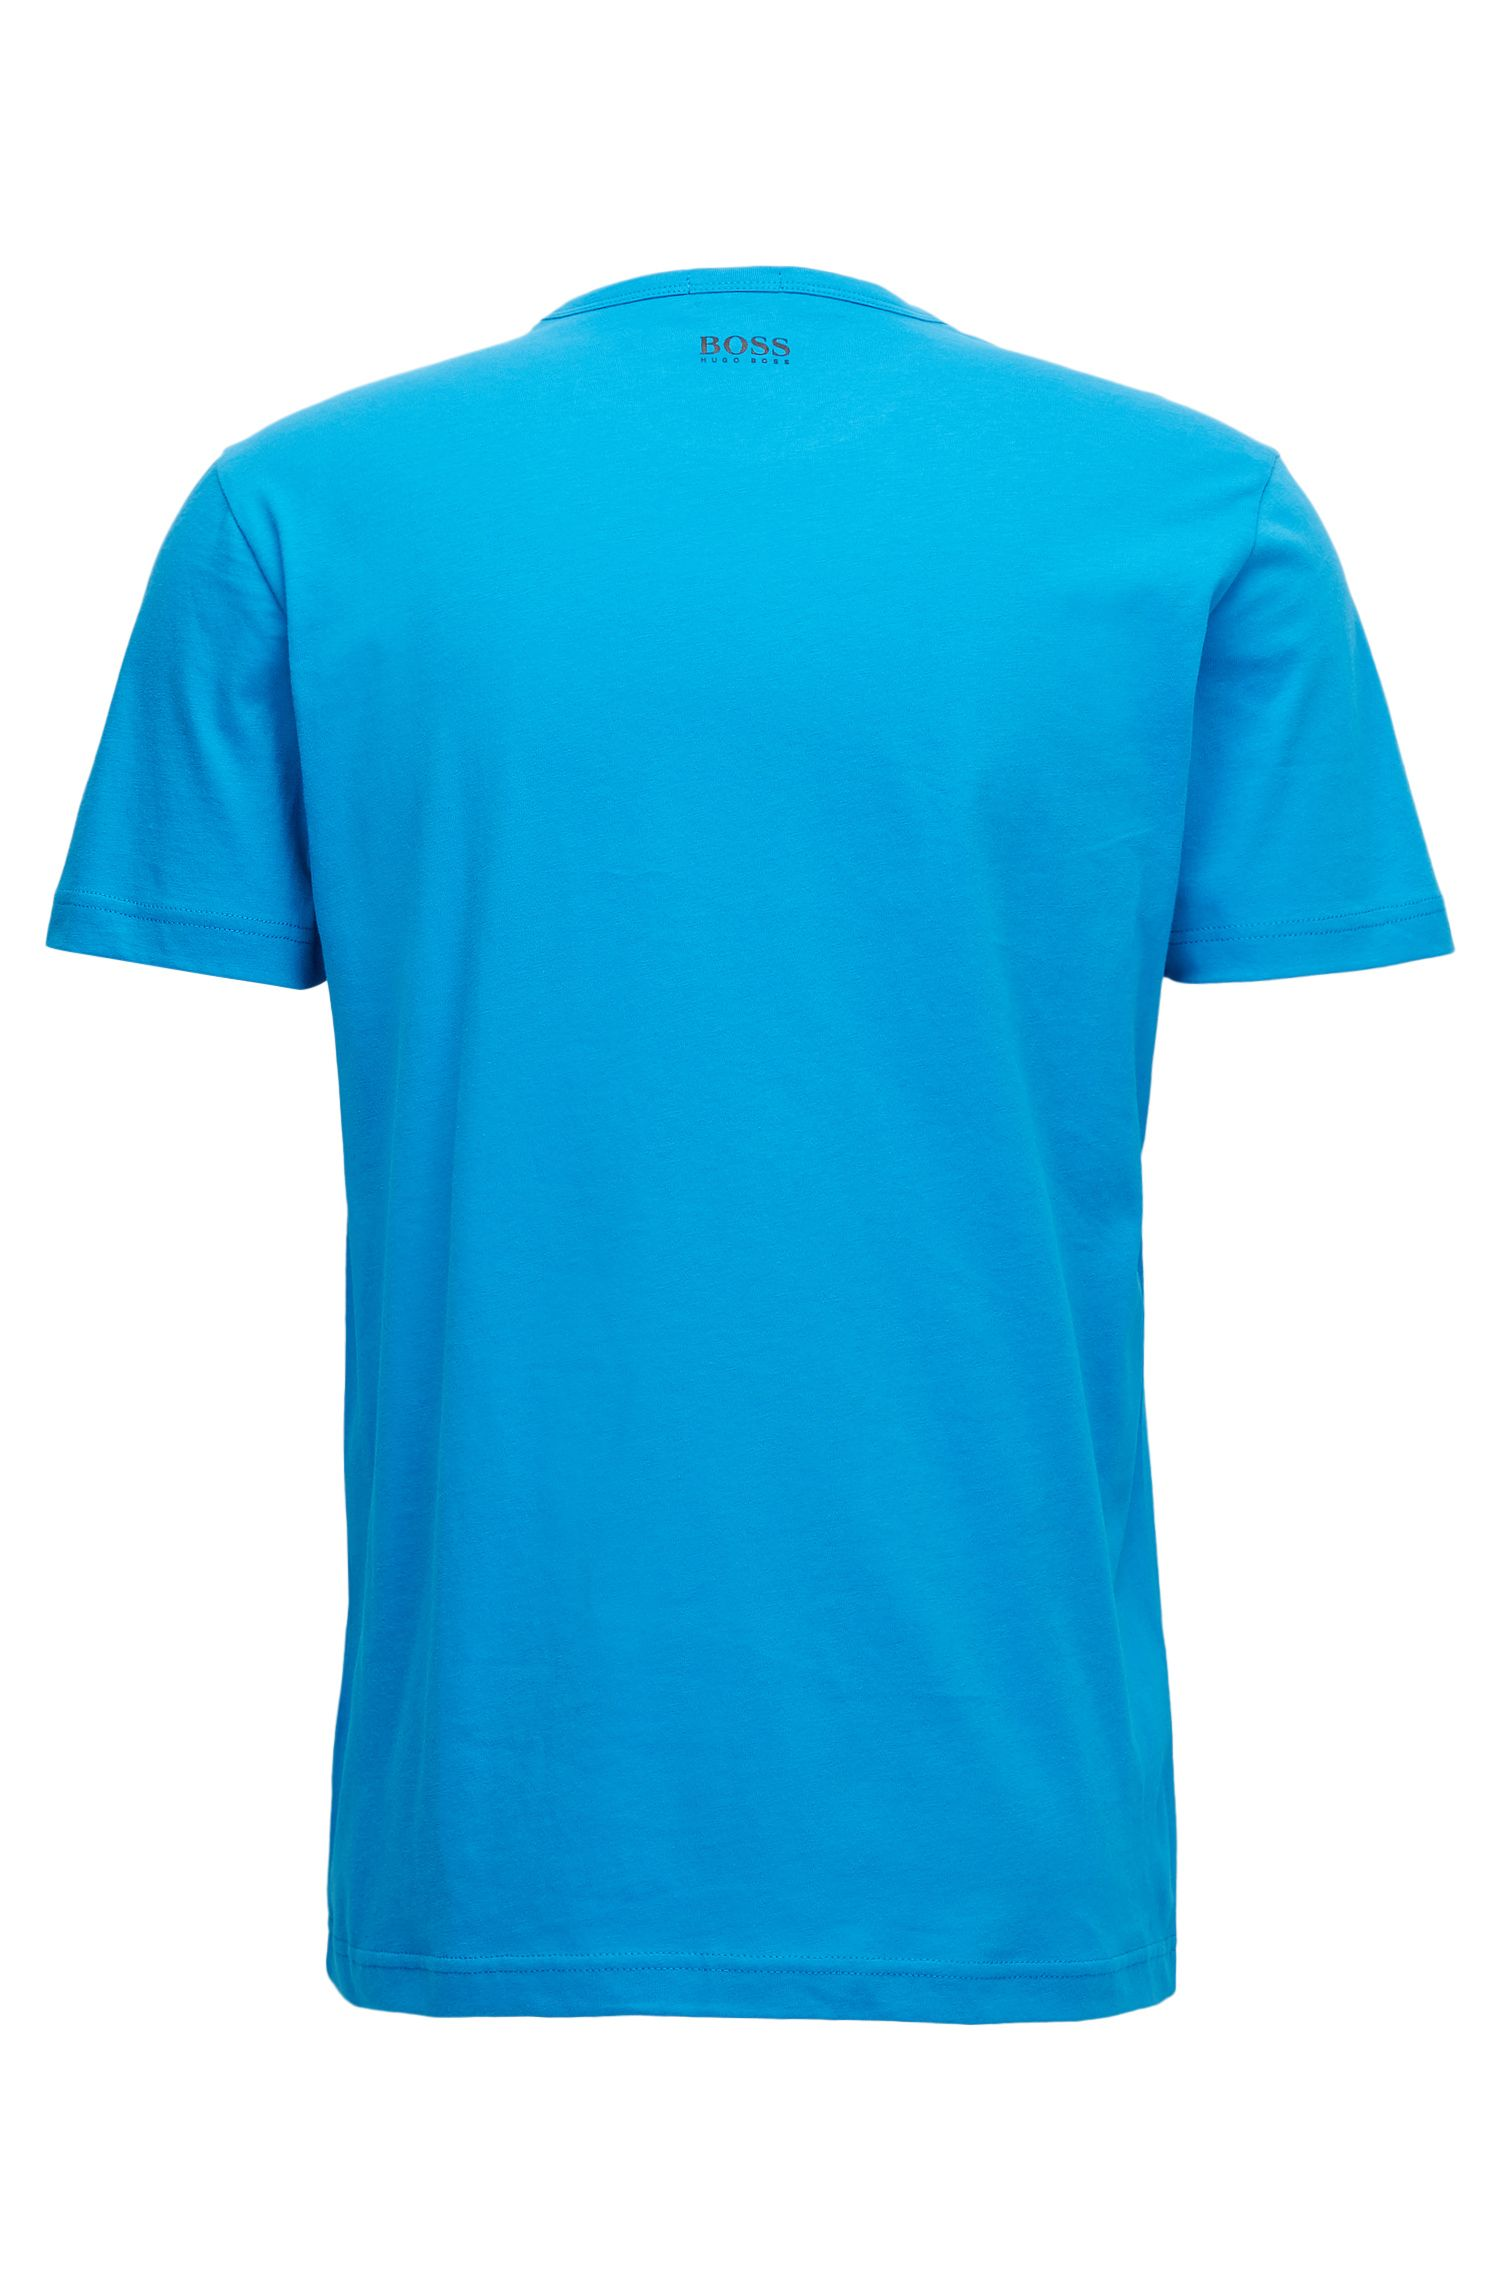 Regular-Fit T-Shirt aus Baumwolle mit Logo